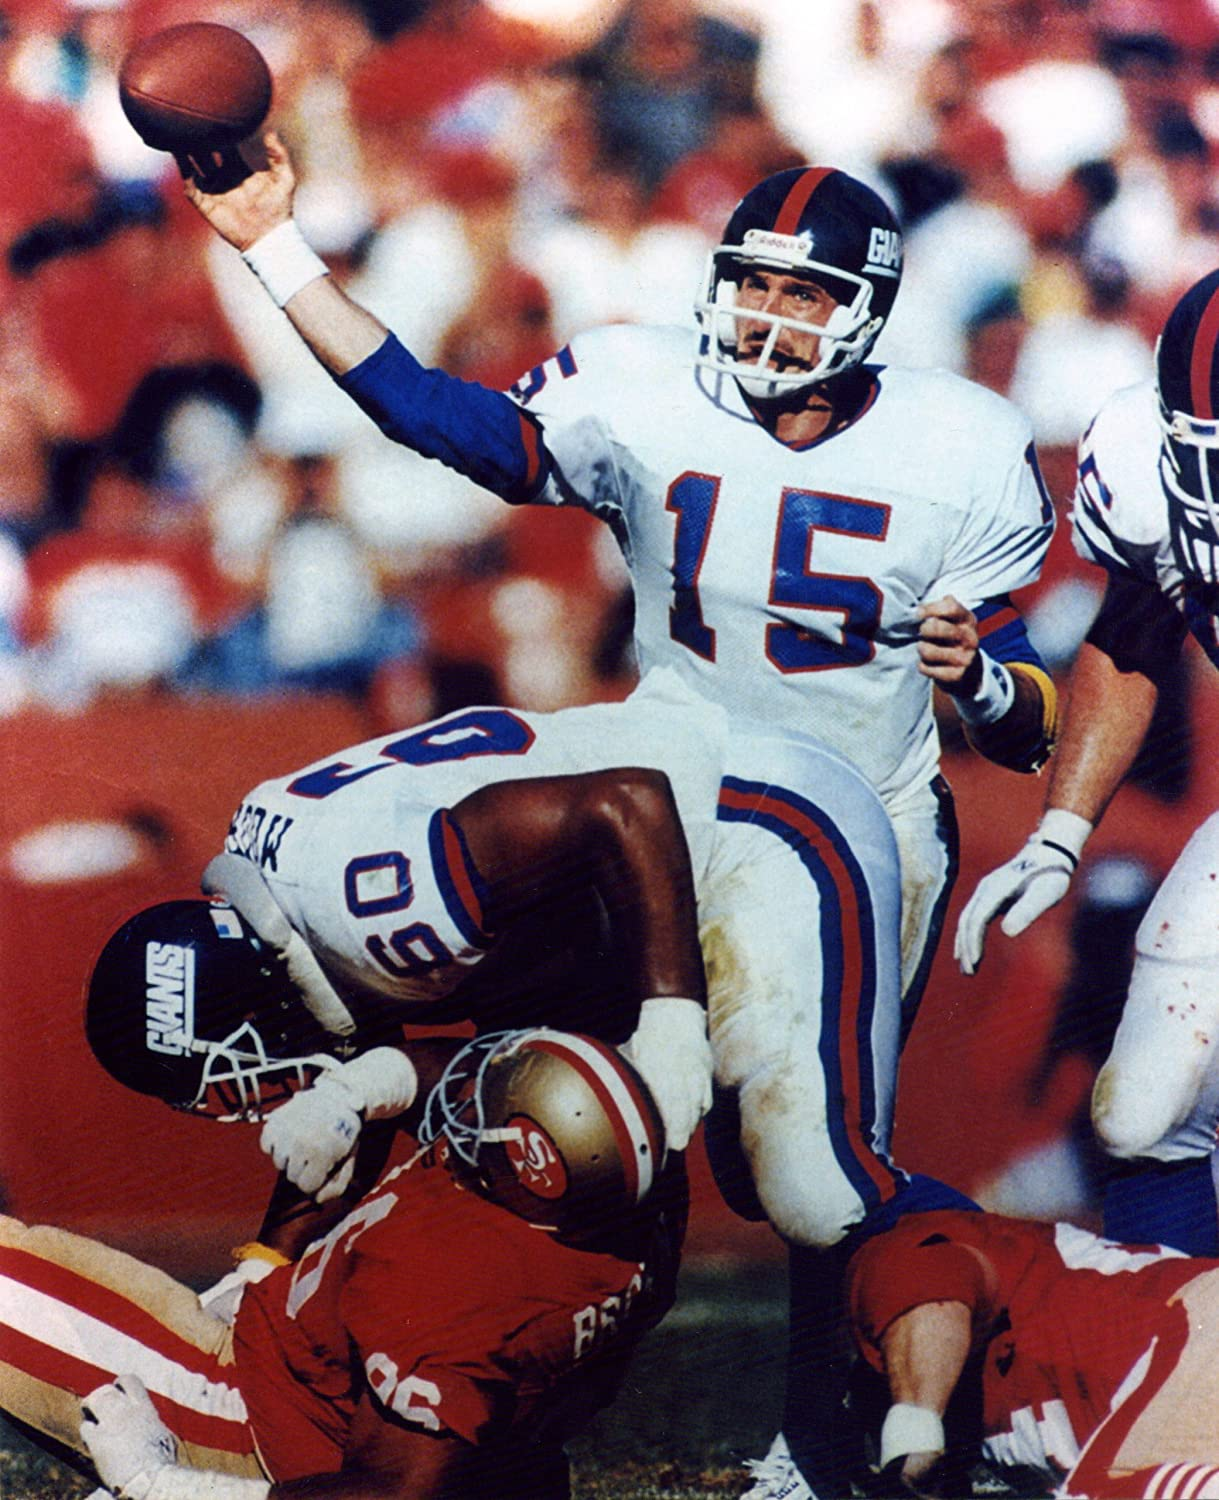 Jeff Hostetlerニューヨークジャイアンツ8 x 10スポーツアクション写真( K Jeff K ) x B004E20CWG, COLOR WARDROBE:63c19626 --- harrow-unison.org.uk